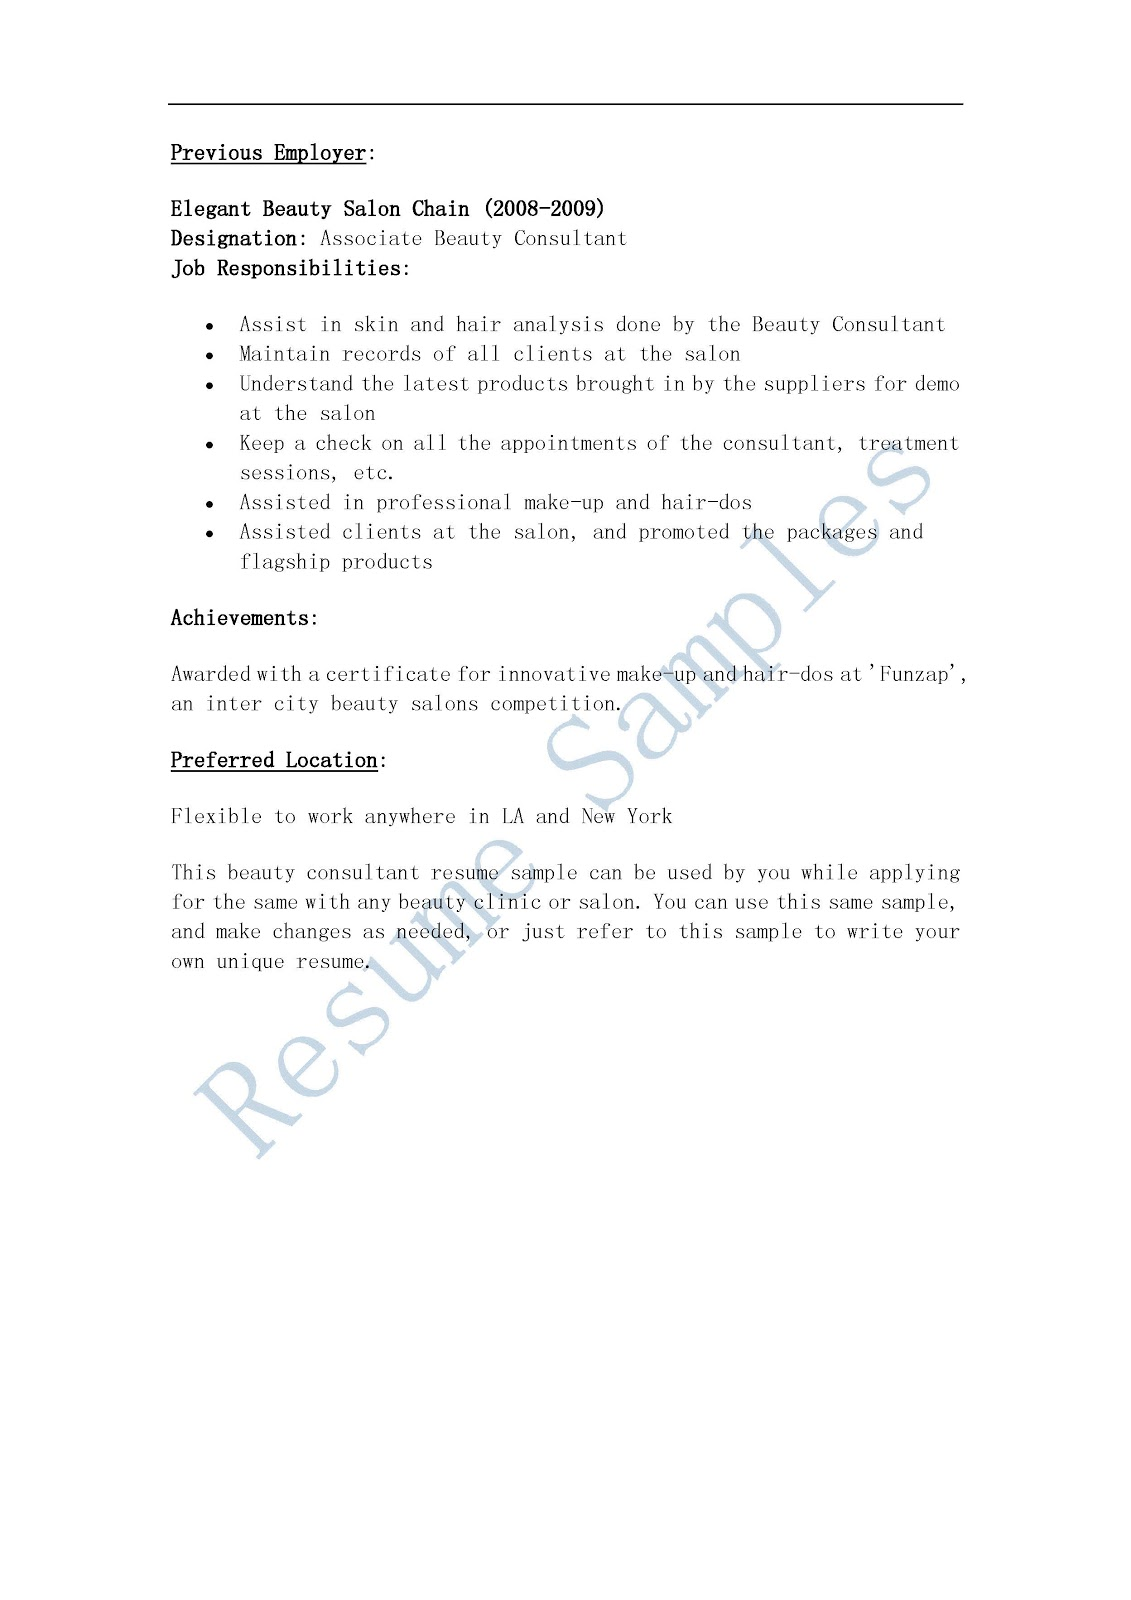 esl thesis ghostwriters websites for phd type my best persuasive cover letter cosmetologist resume template examples for